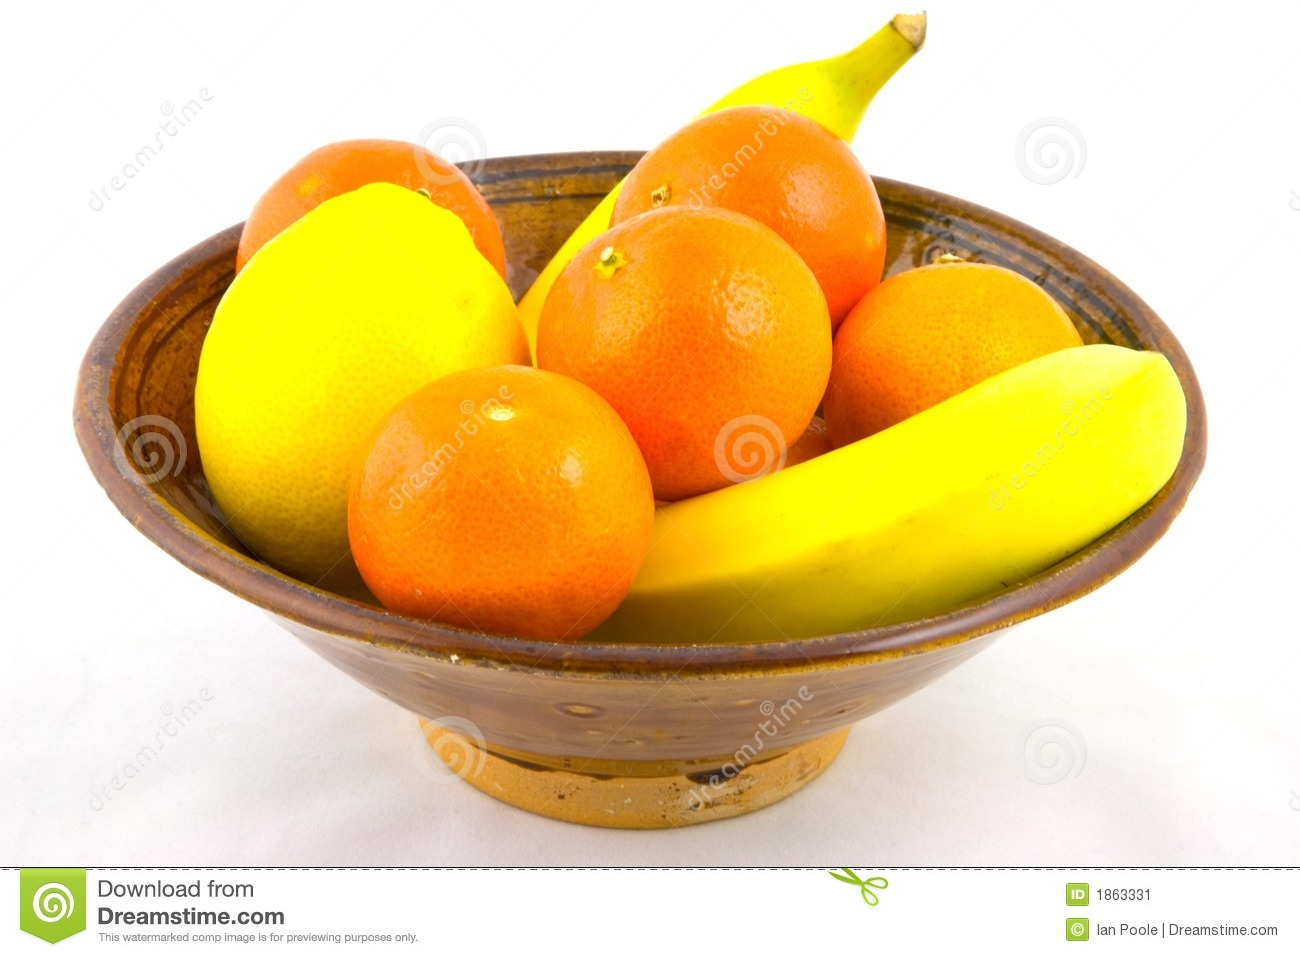 bowl of fruit containing oranges, bananas and a lemon.